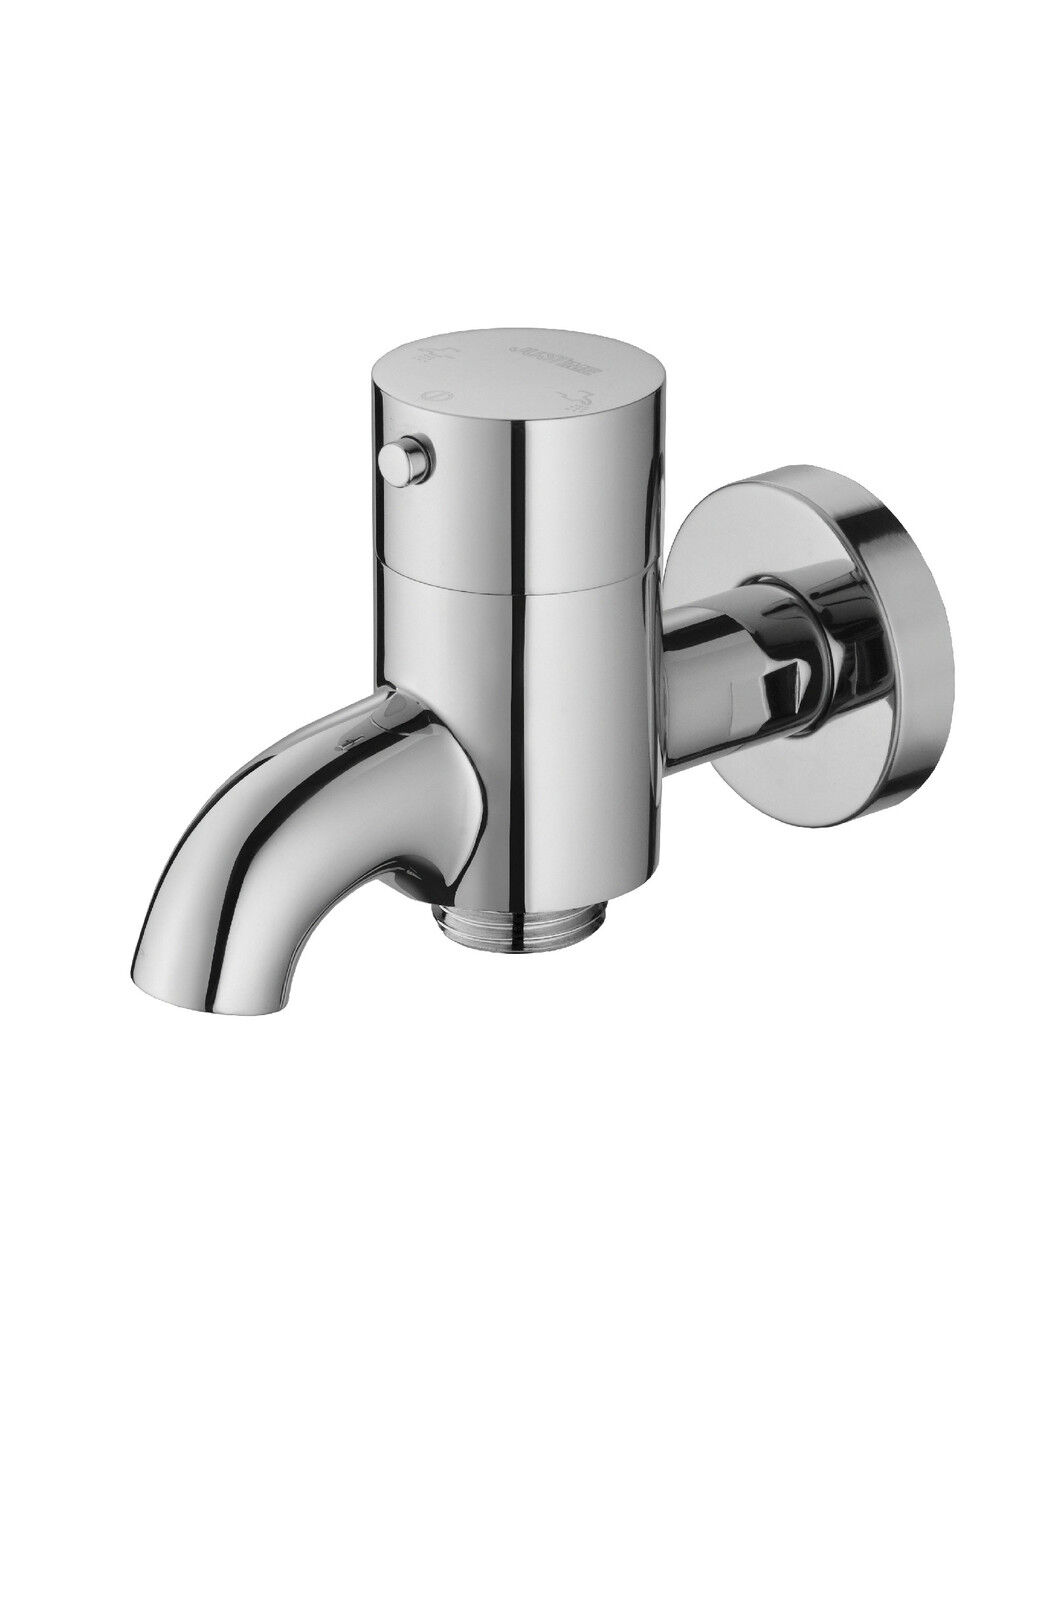 Bib Tap 2 Way Function With Quick-Action Coupling For Connecting Garden Hose